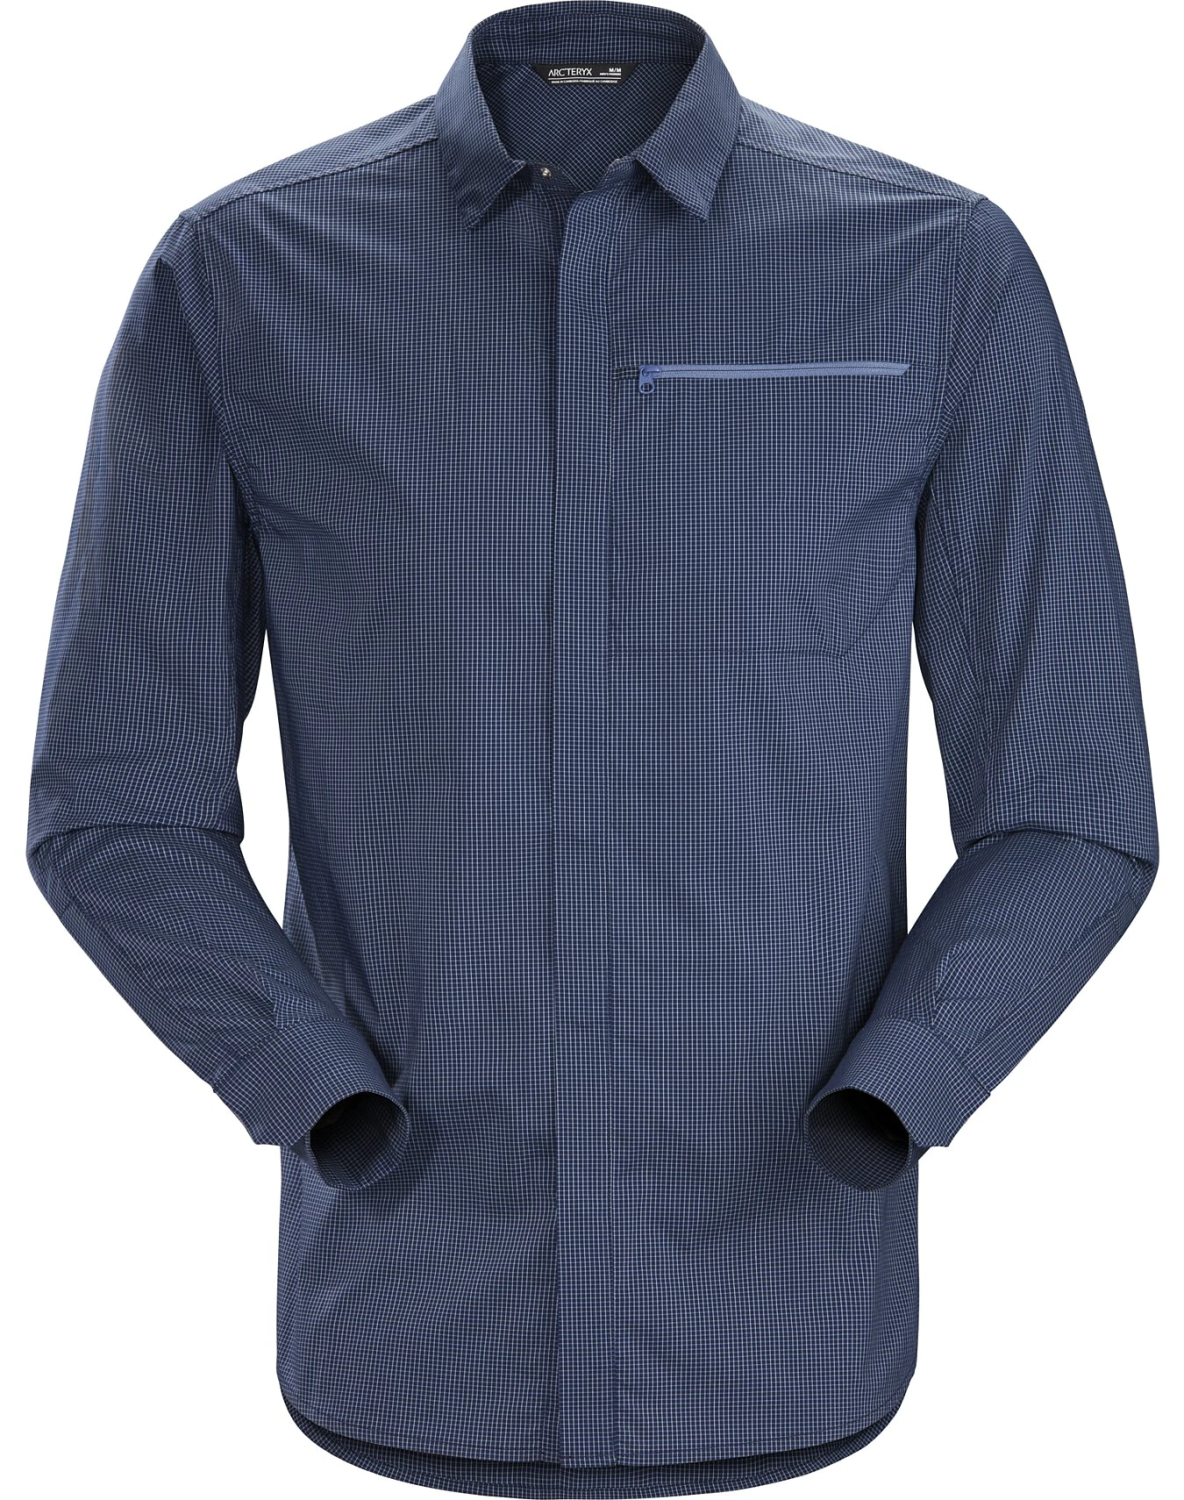 Kaslo Shirt LS Men's